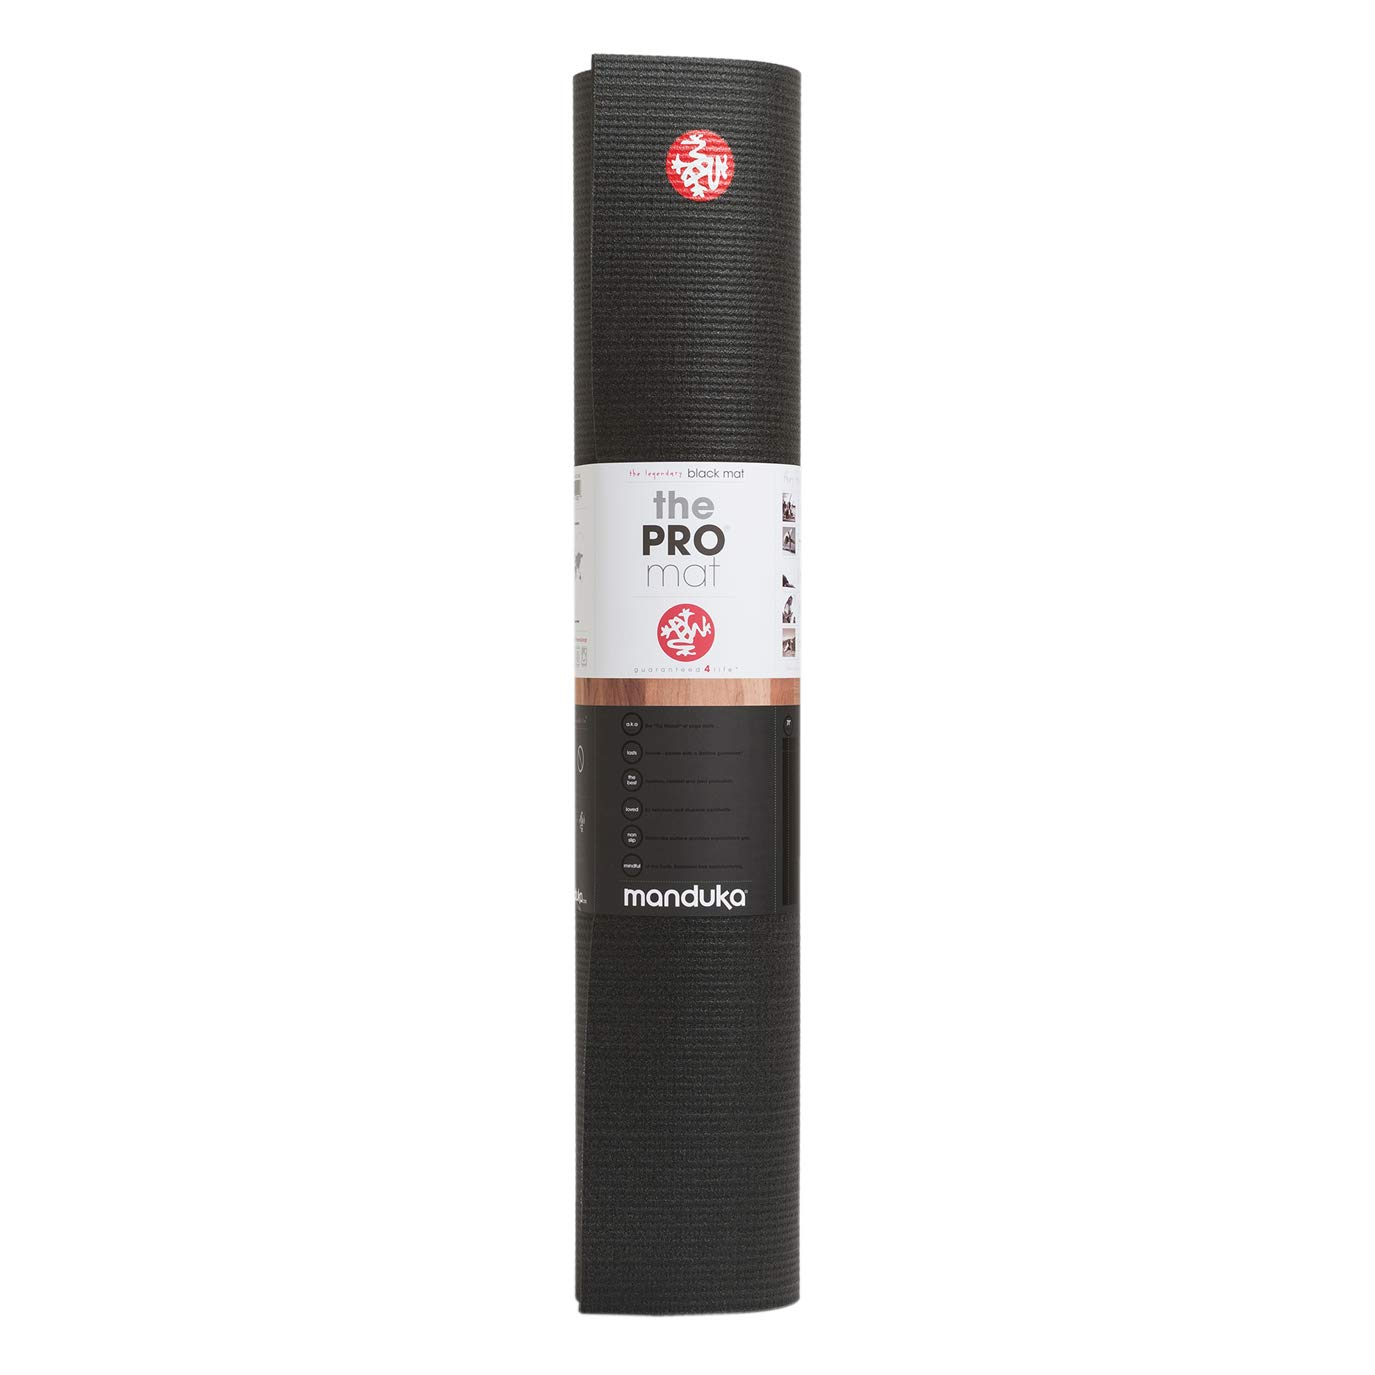 MandukaTHE Pro - Fitness/Yoga - Black: Amazon.es: Deportes y ...